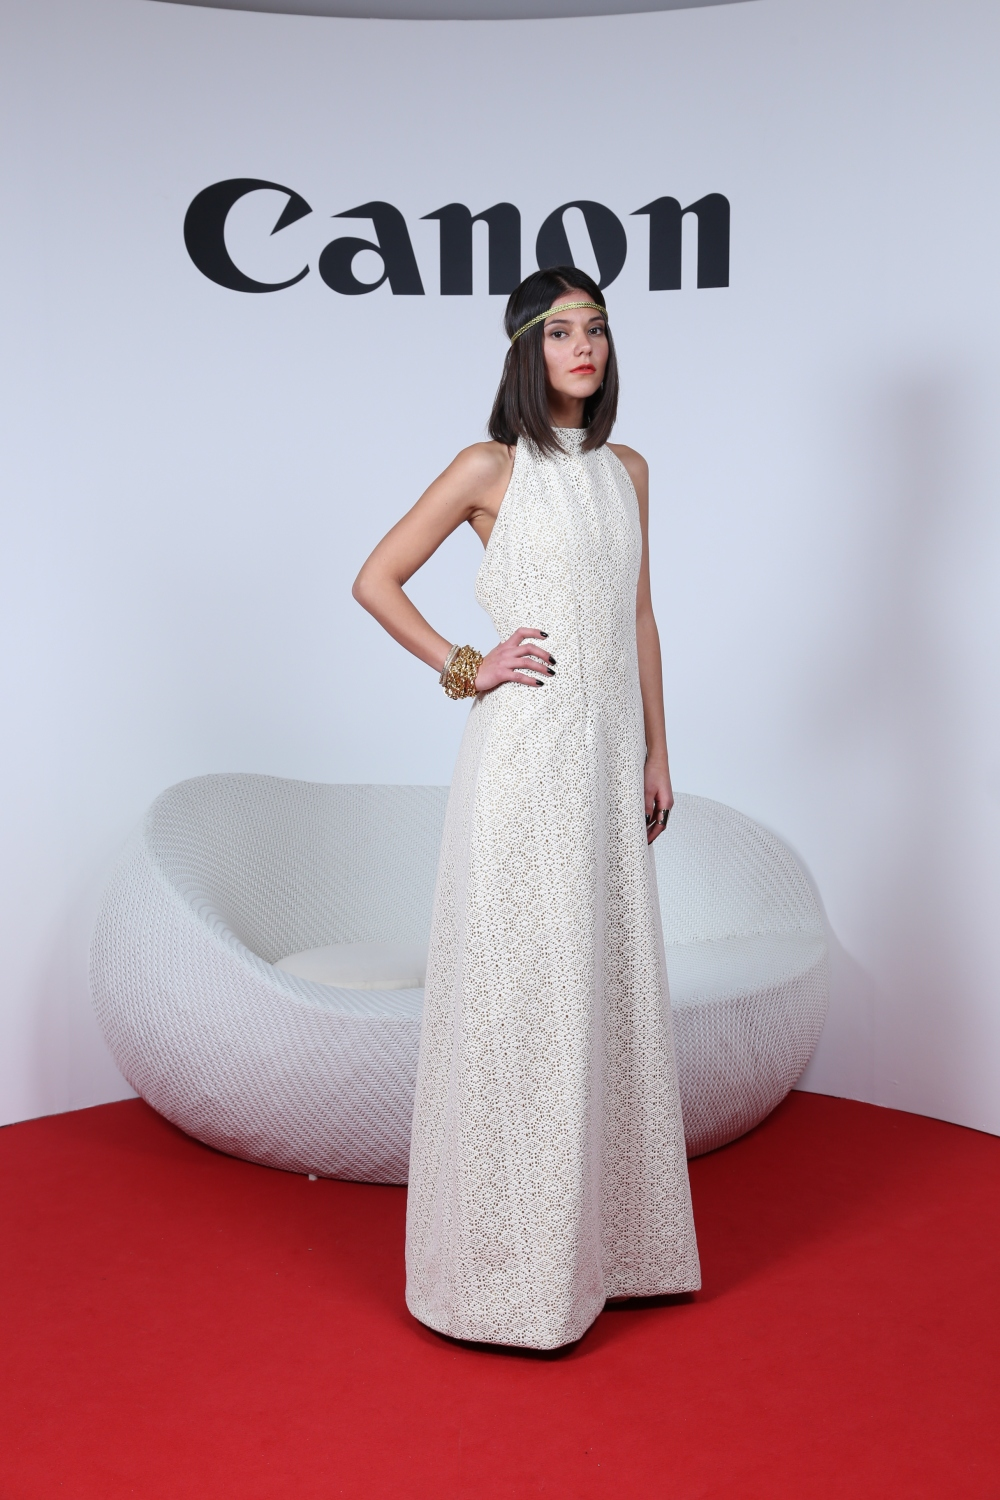 Get the look with Canon and stylist Katherin Mas